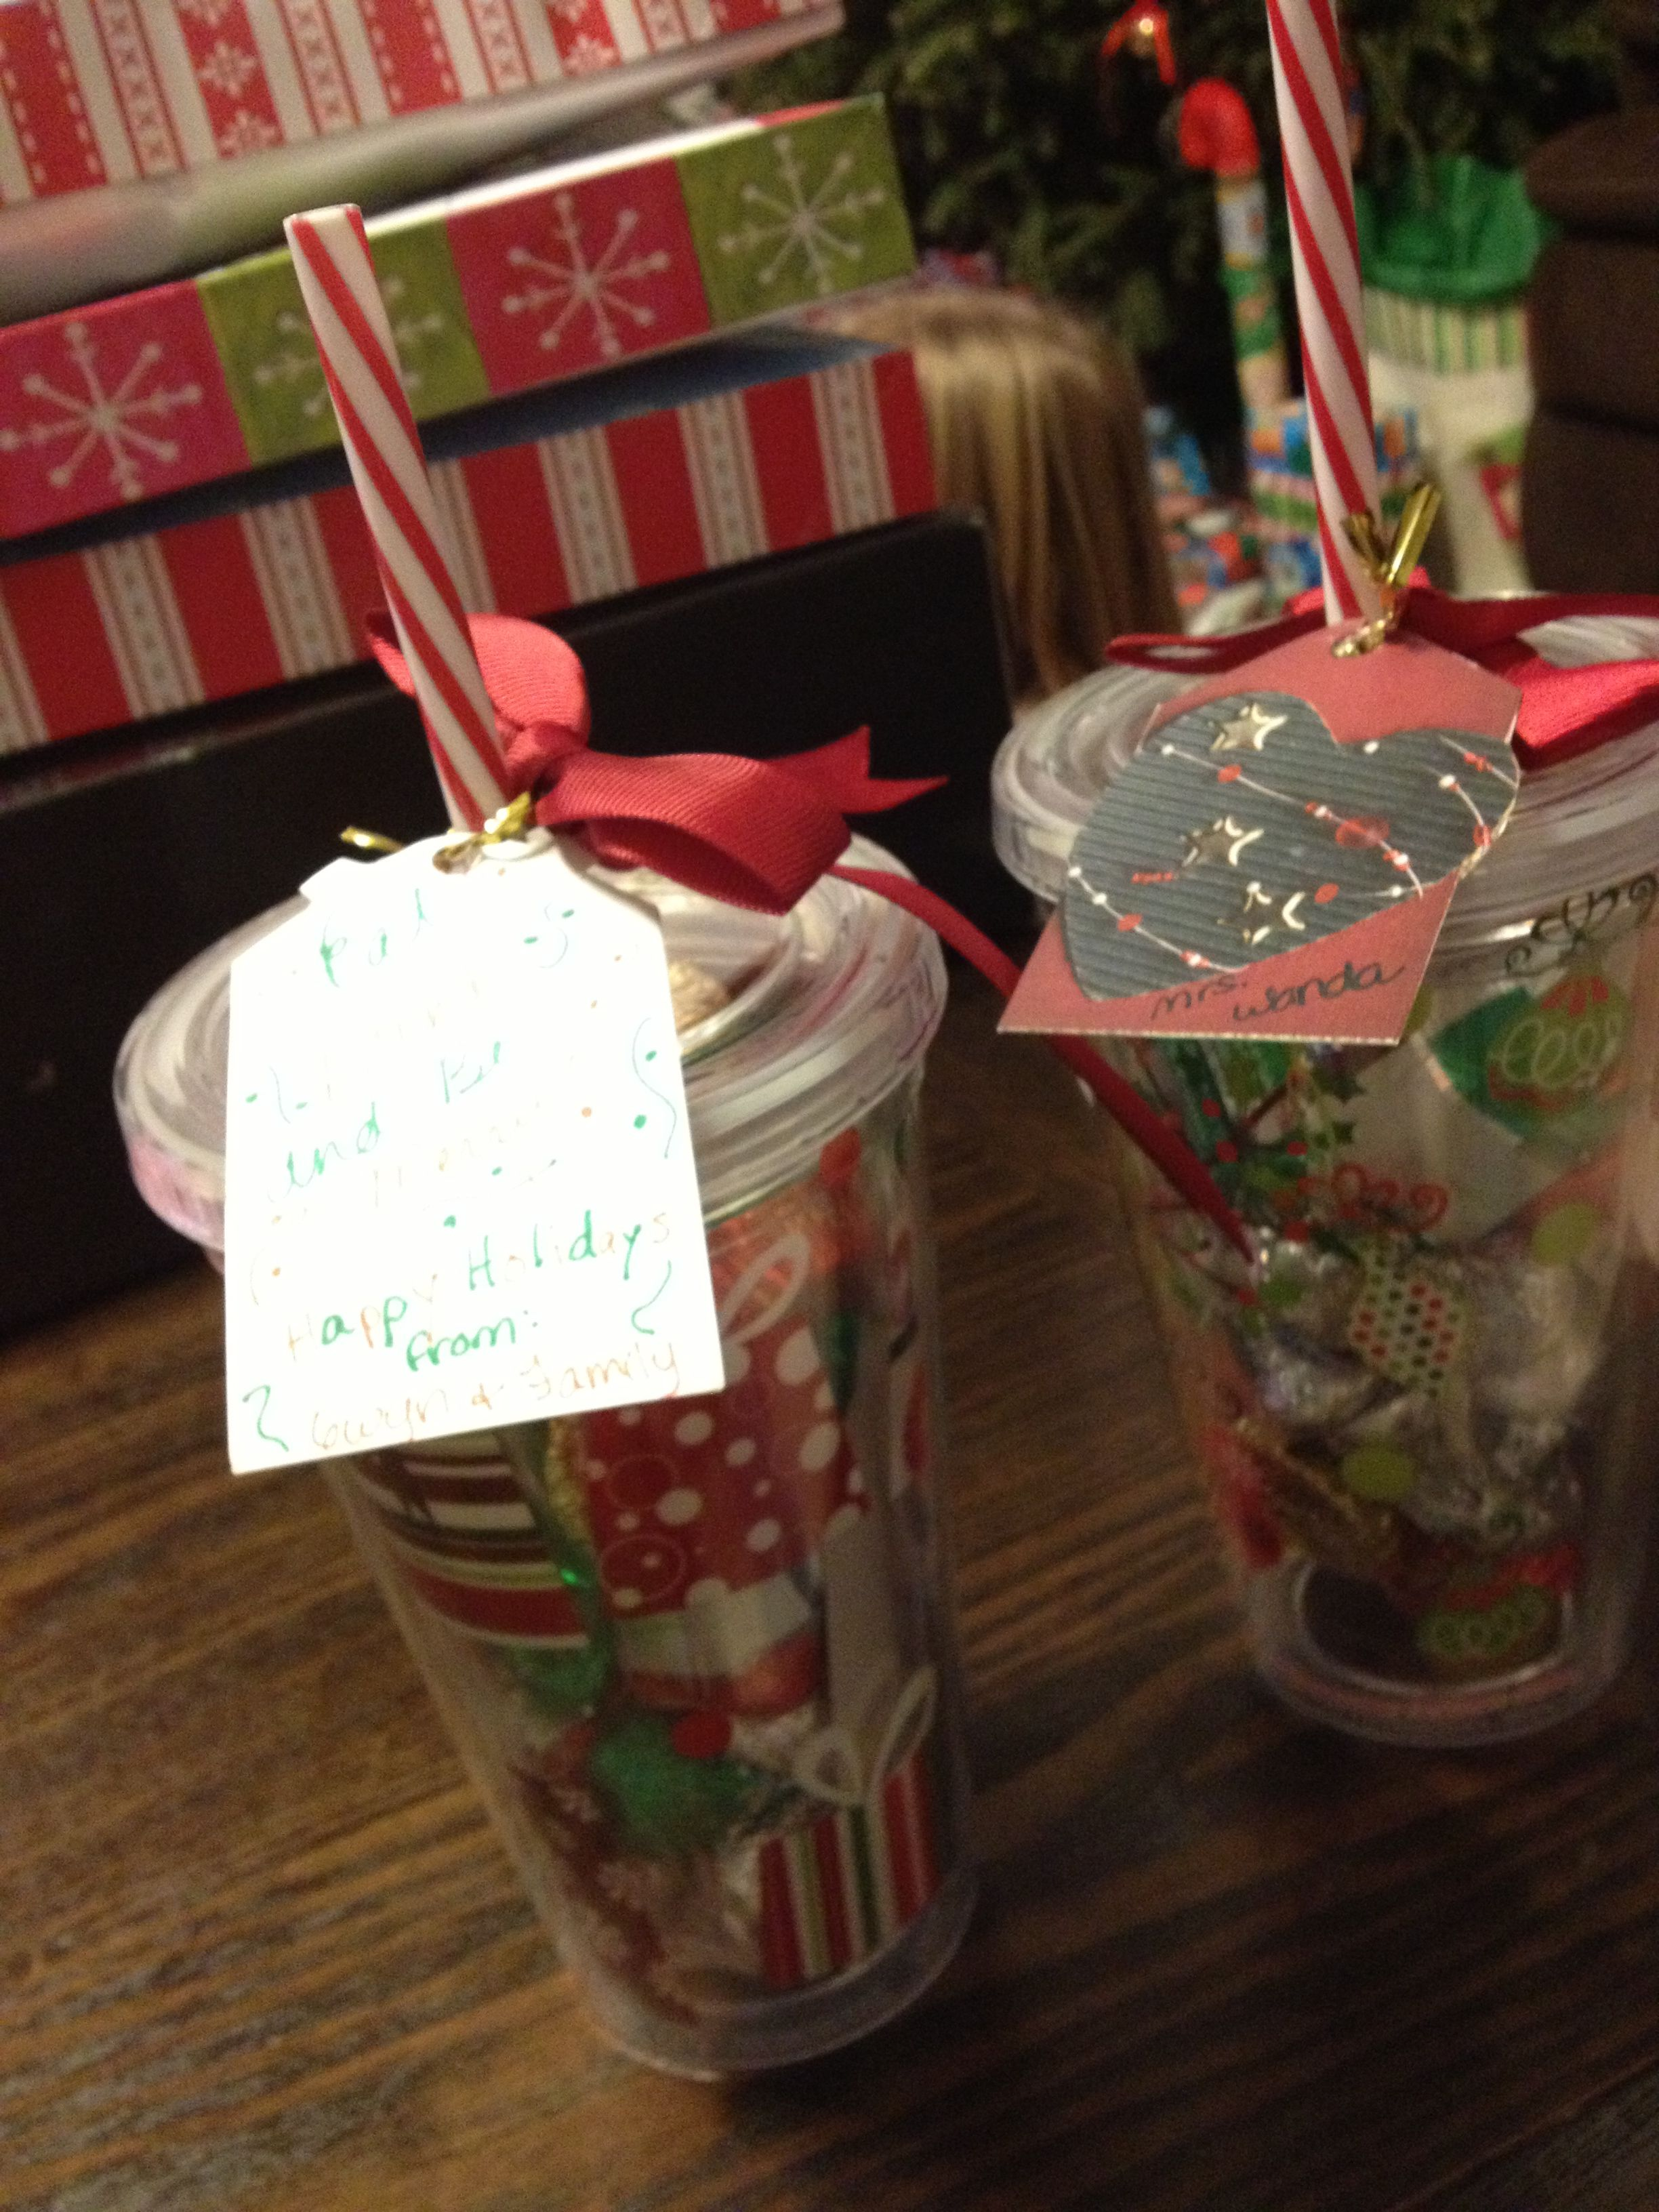 Preschool teacher gifts for Christmas! | Gift ideas | Pinterest